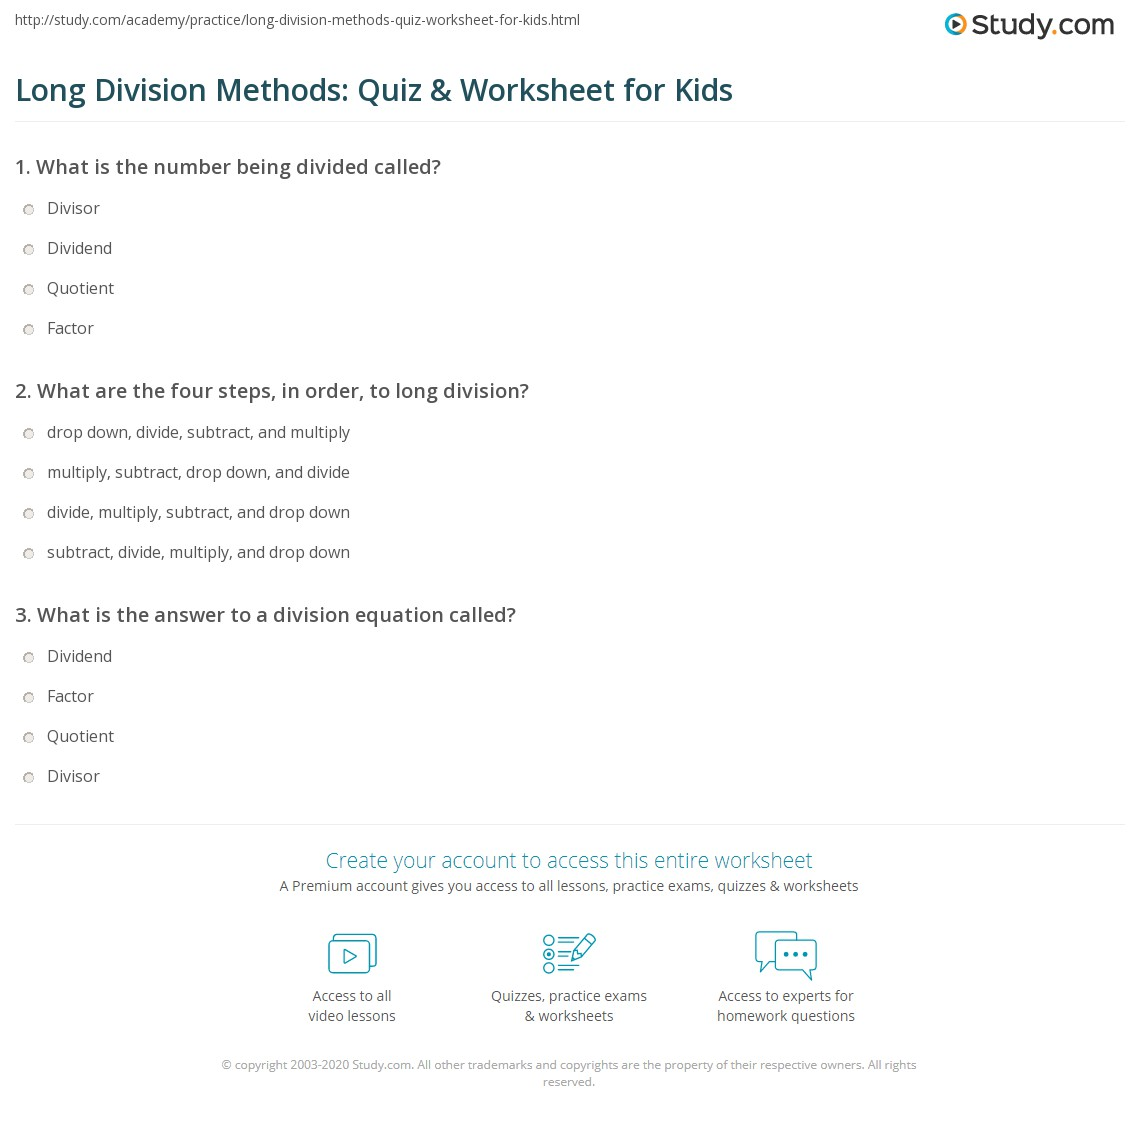 Long Division Methods Quiz & Worksheet for Kids